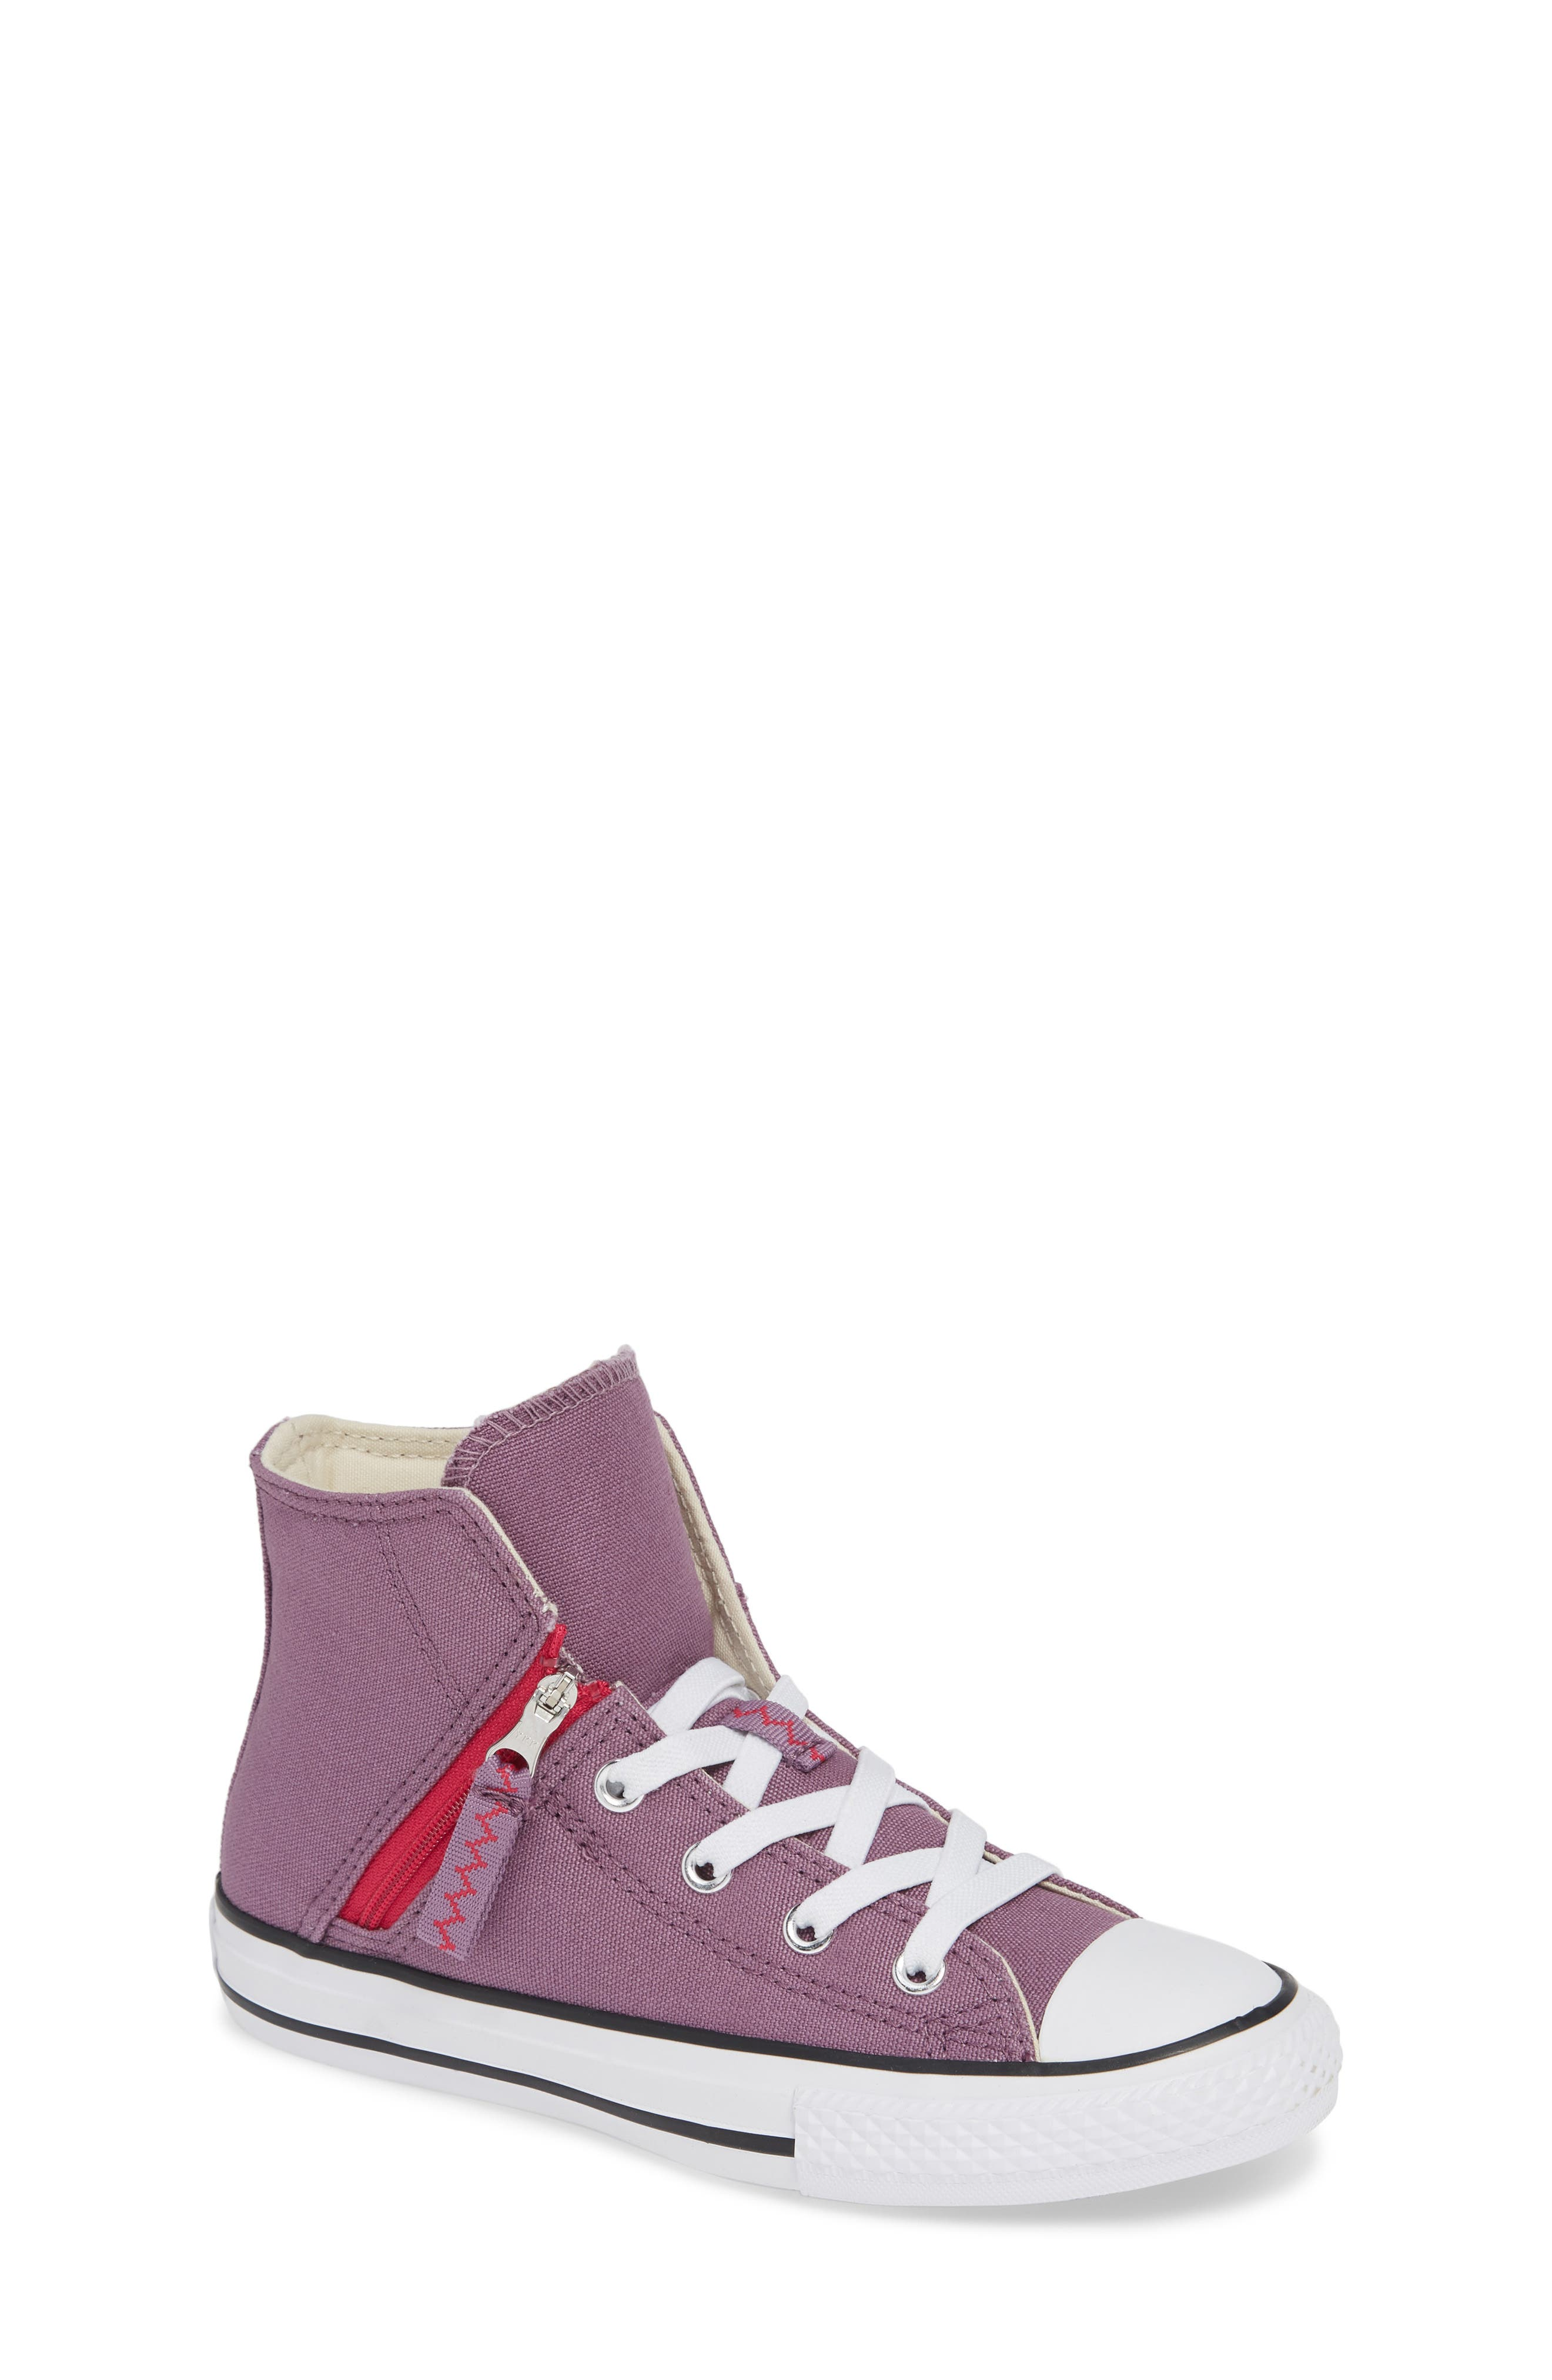 Chuck Taylor<sup>®</sup> All Star<sup>®</sup> Pull Zip High Top Sneaker,                             Main thumbnail 1, color,                             Violet Dust